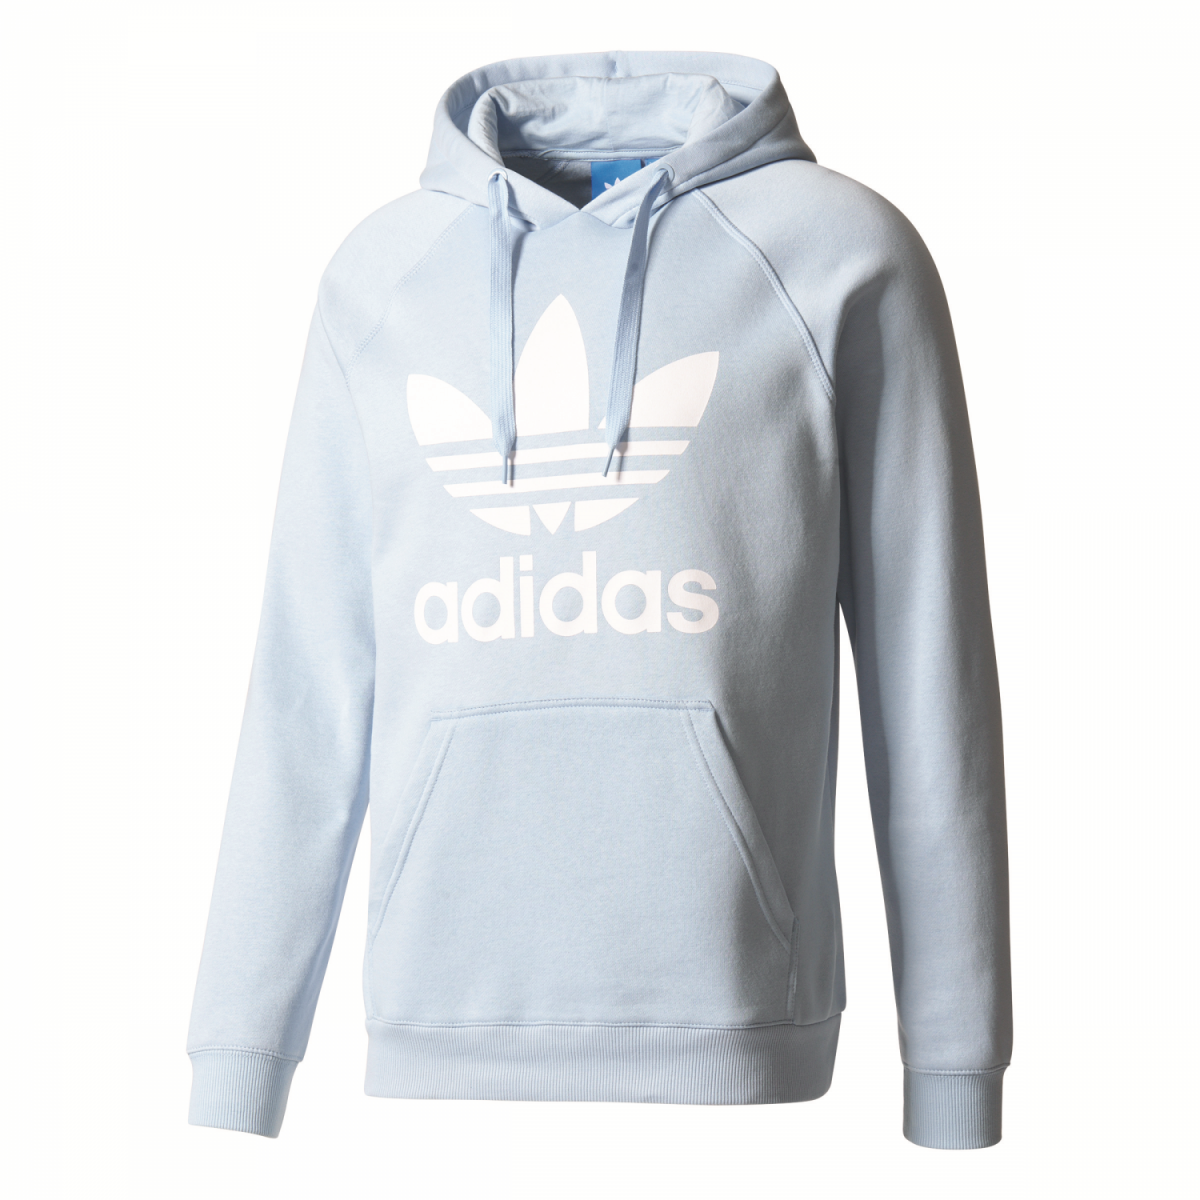 sport klingenmaier adidas originals trefoil hoodie herren kapuzenpullover hellblau online kaufen. Black Bedroom Furniture Sets. Home Design Ideas